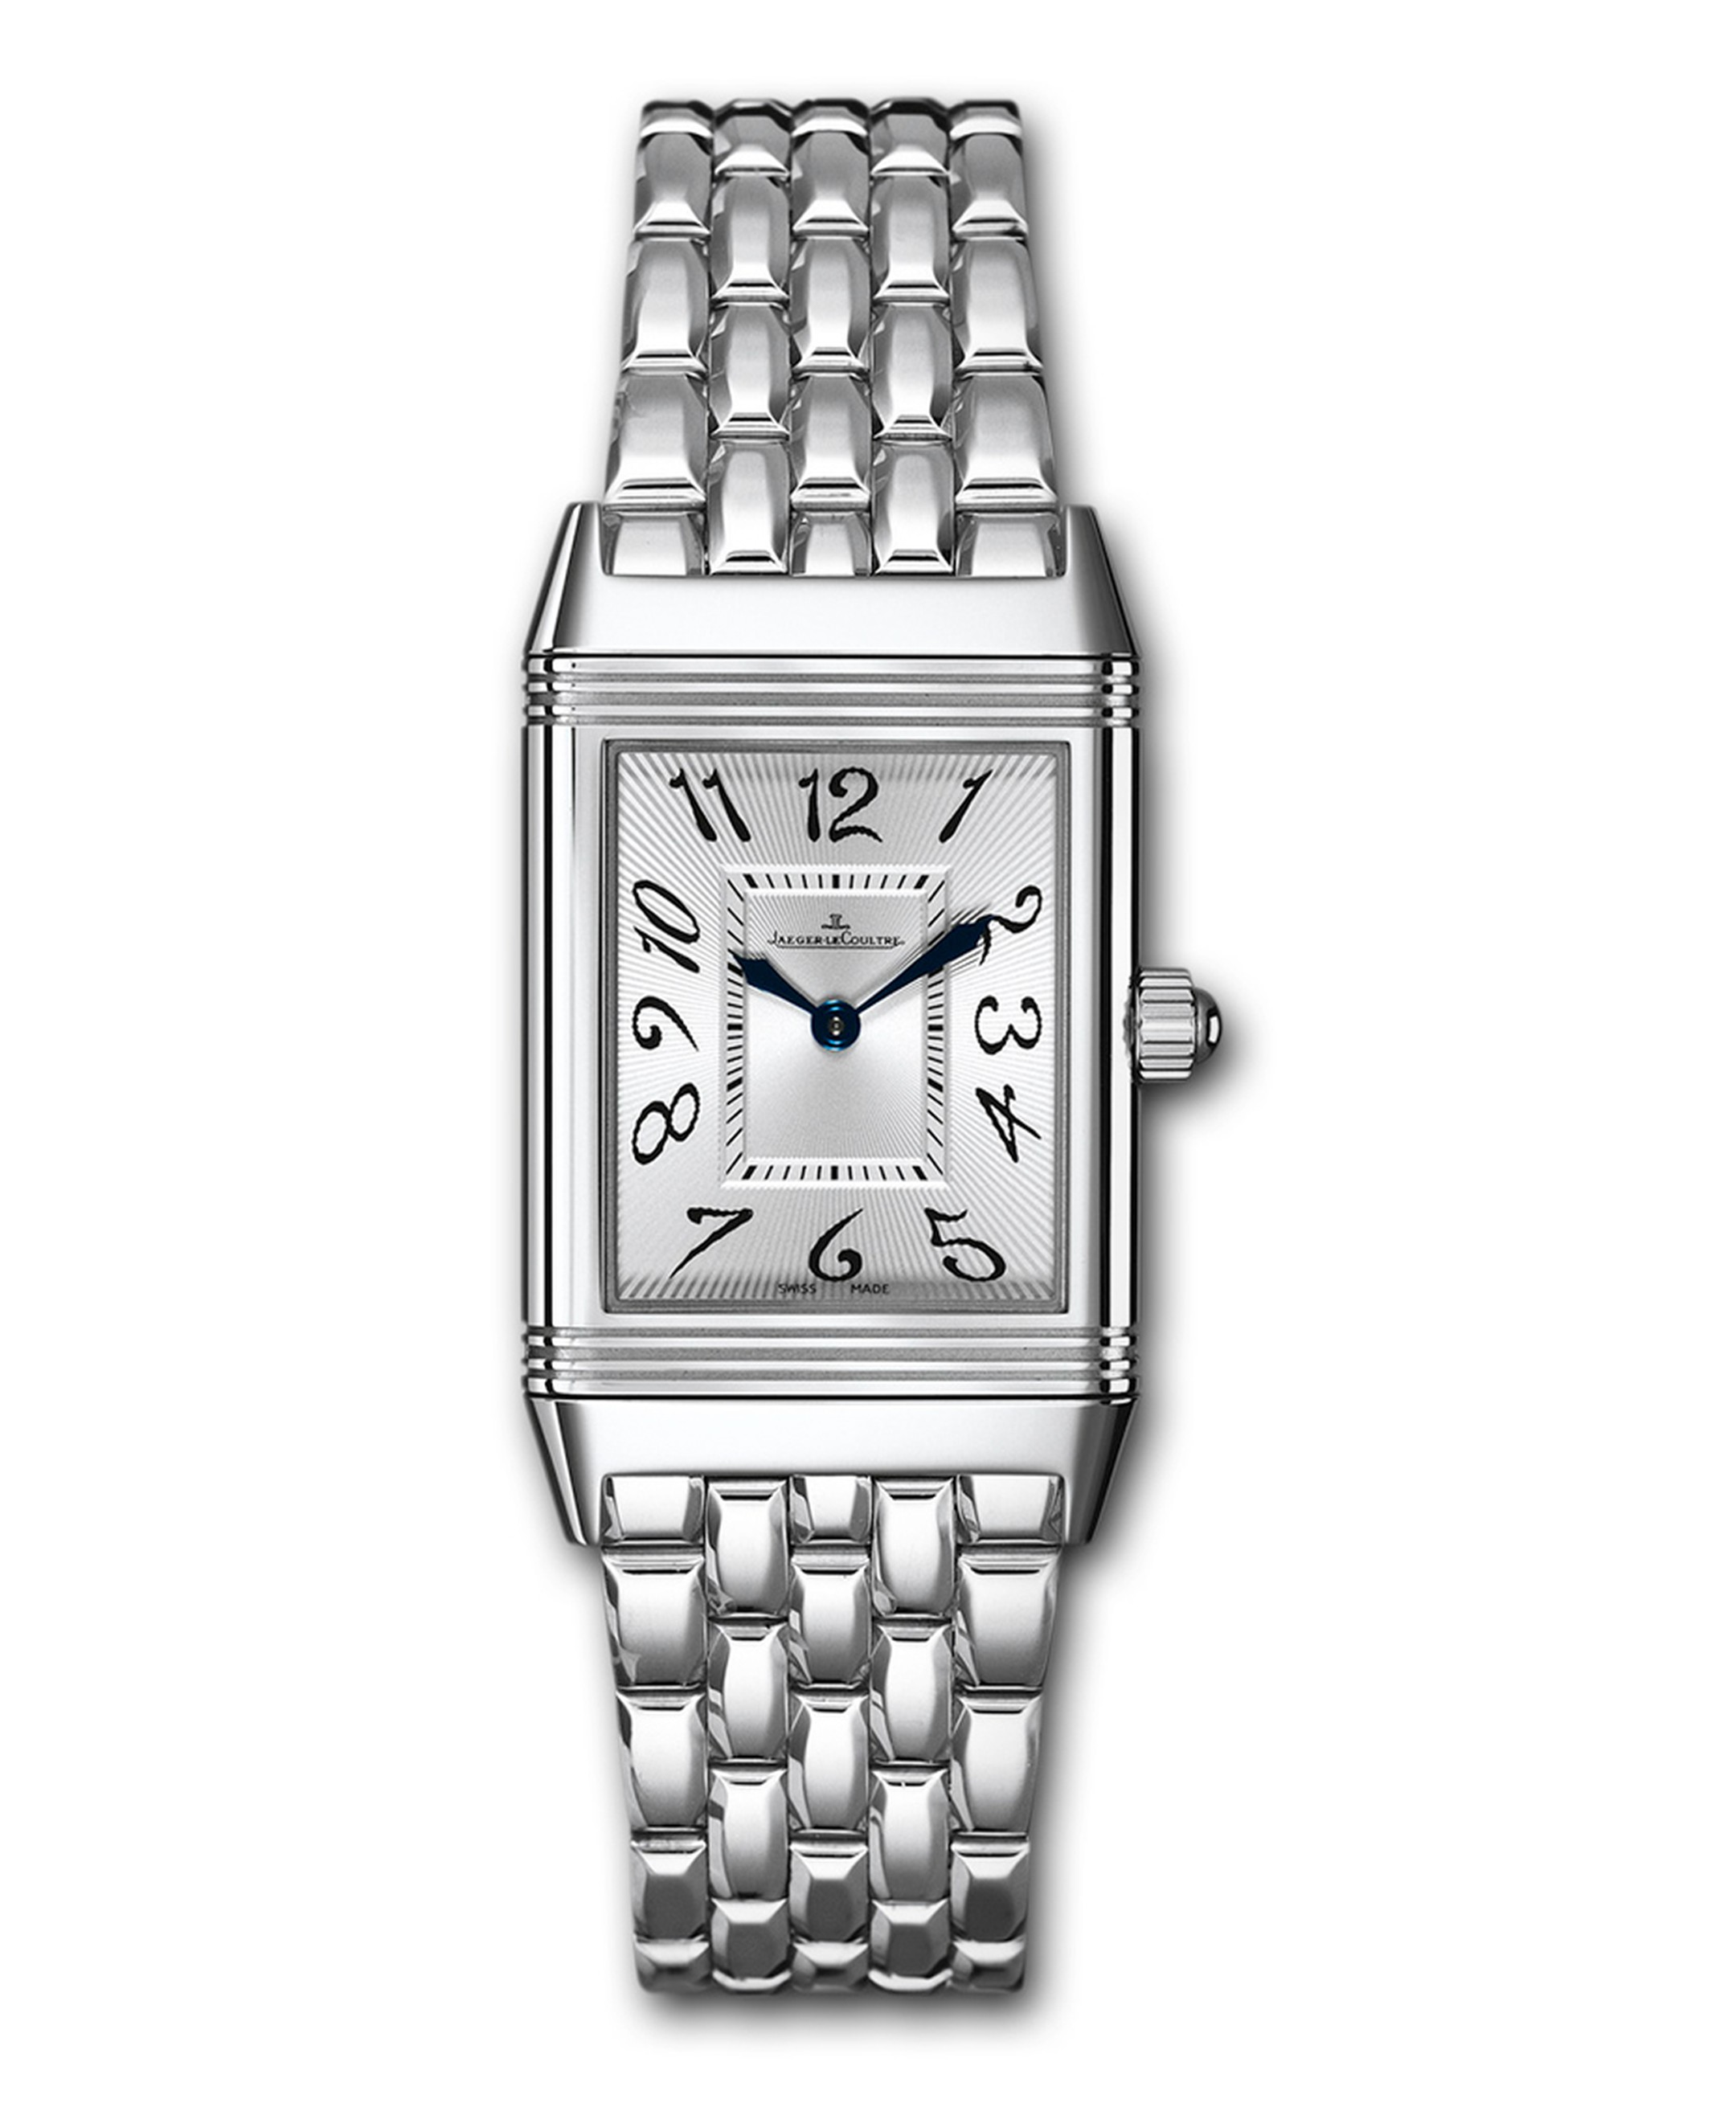 The Jaeger-LeCoultre Reverso Duetto Classique watch in stainless steel featuring a silvered guilloché and sunray-brushed dial and floral numerals.